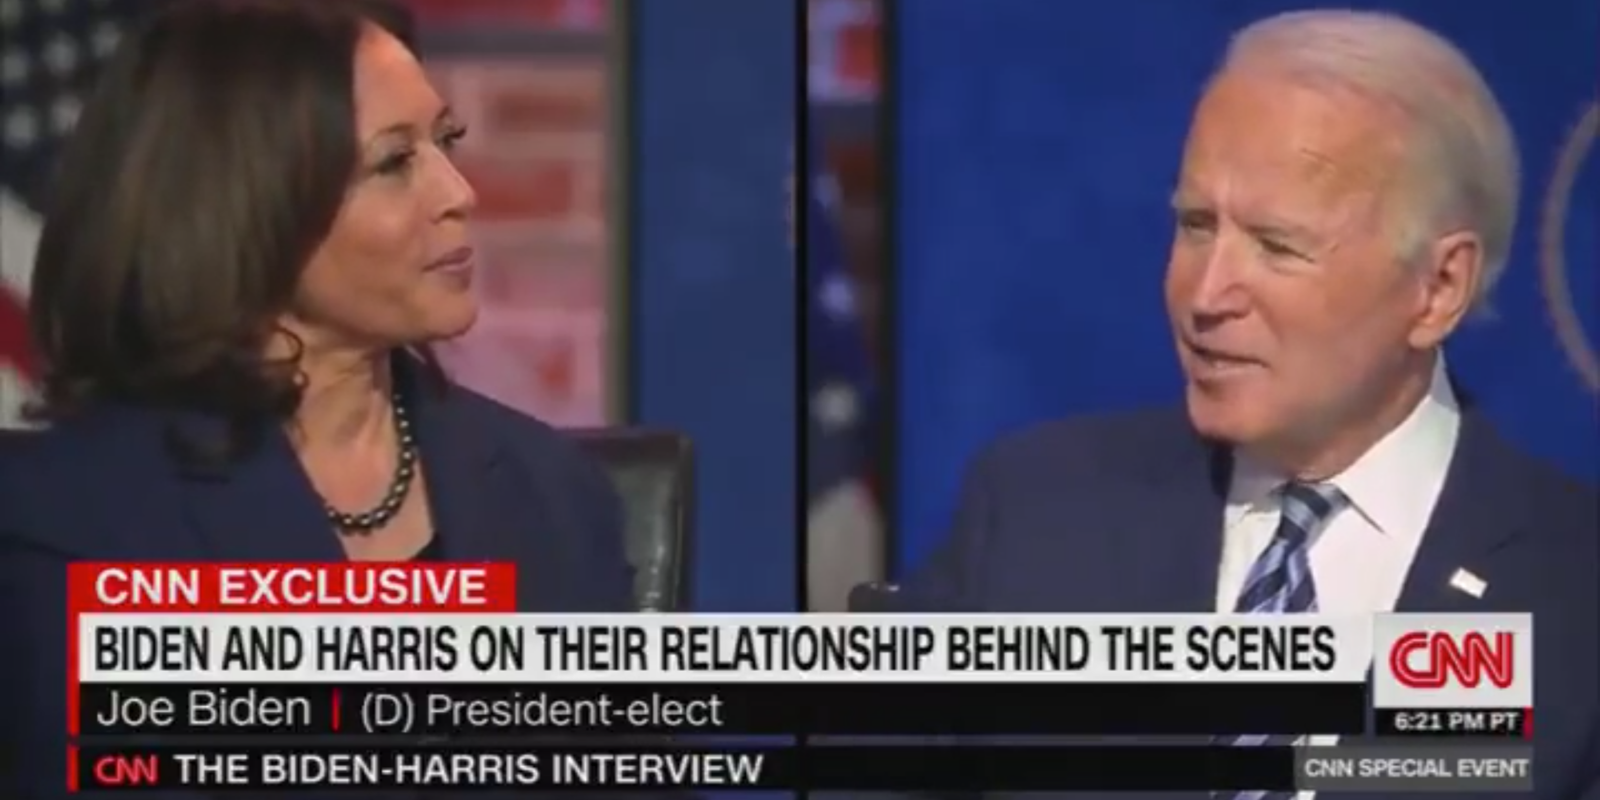 WATCH: Joe Biden says he'll 'develop some disease and resign' if he and Kamala Harris disagree